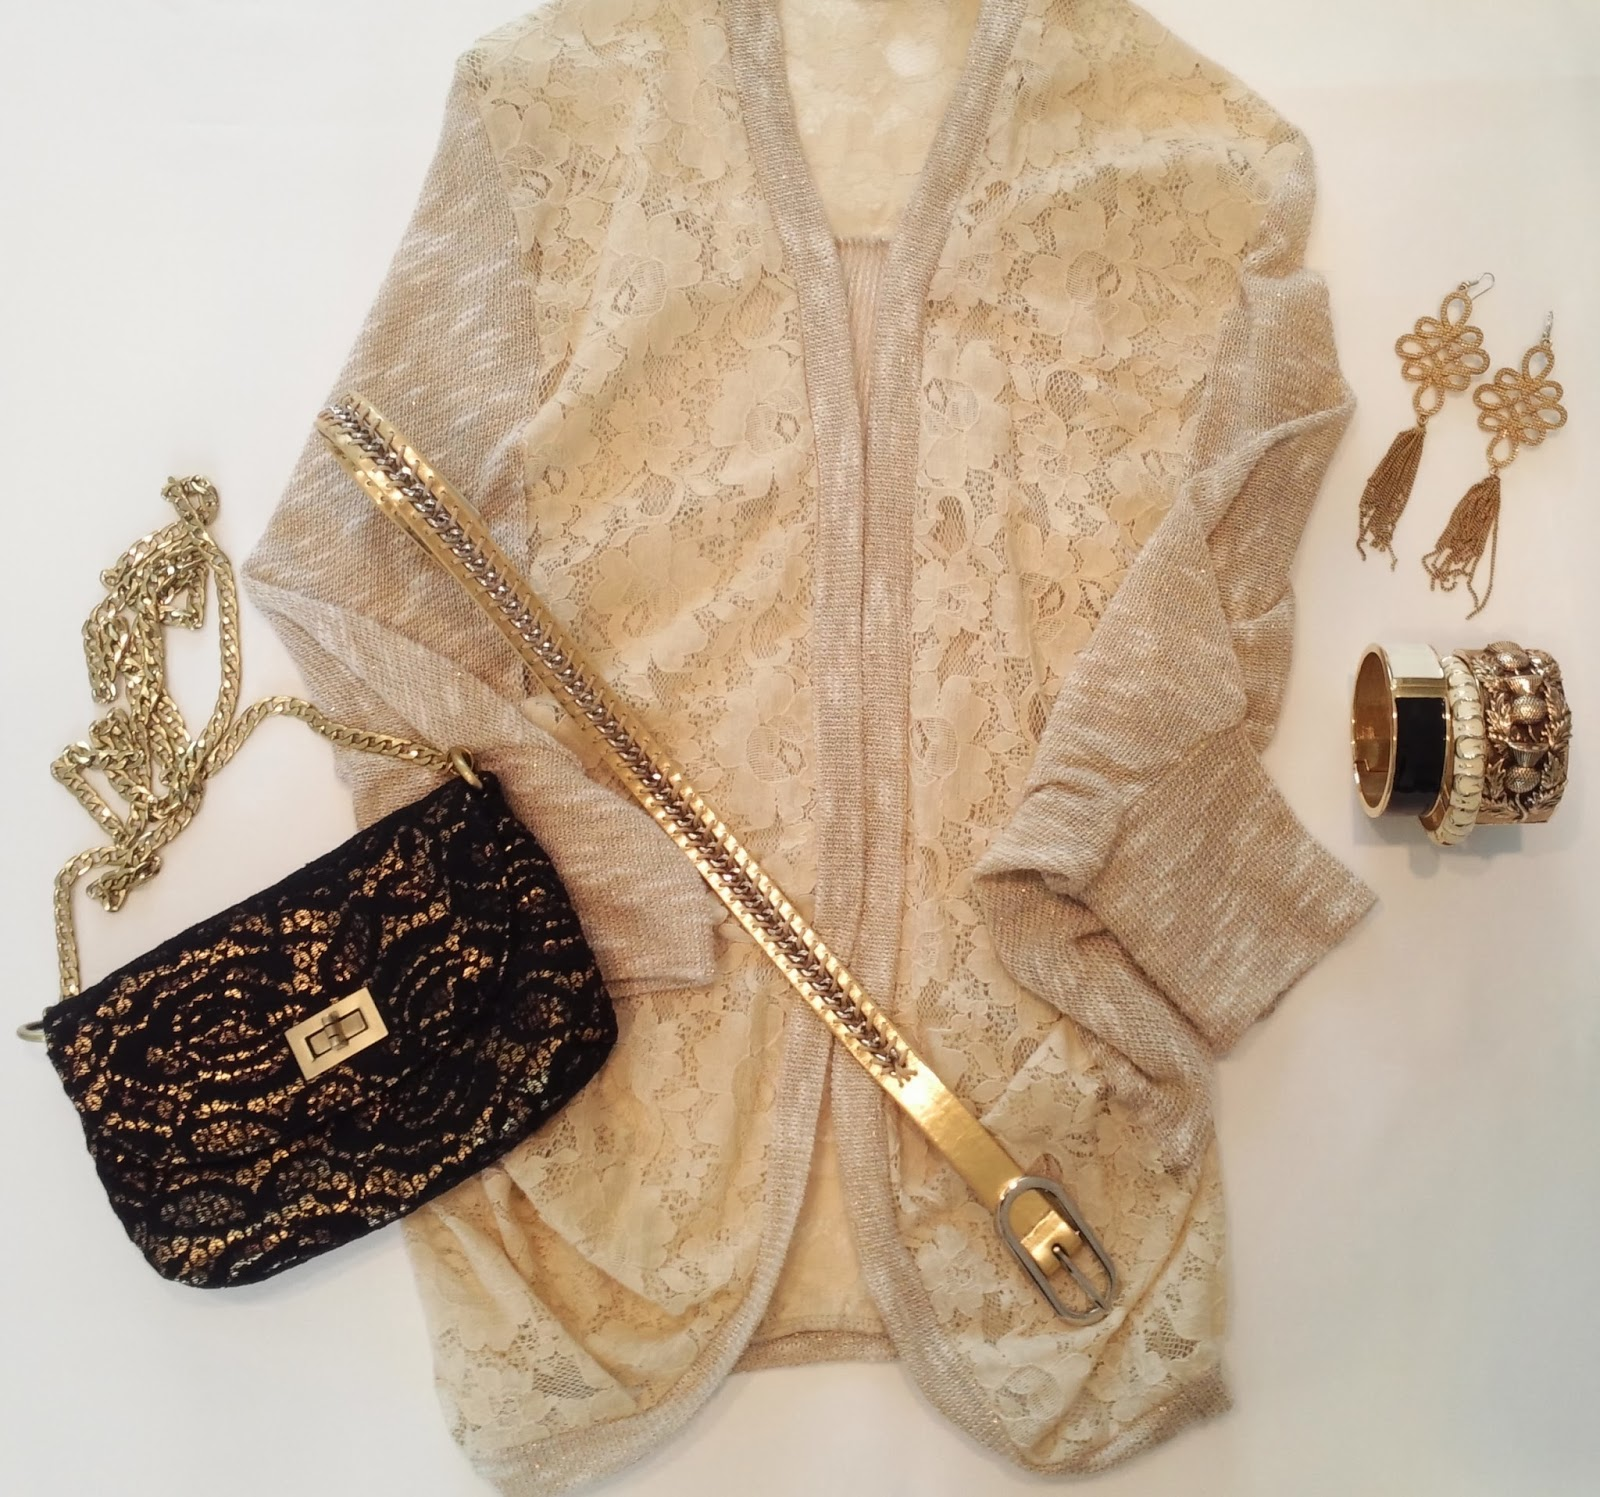 blog.oanasinga.com-outfit-ideas-personal-style-photos-wearing-lace-black-grey-gold-layering-gold-accessories-3